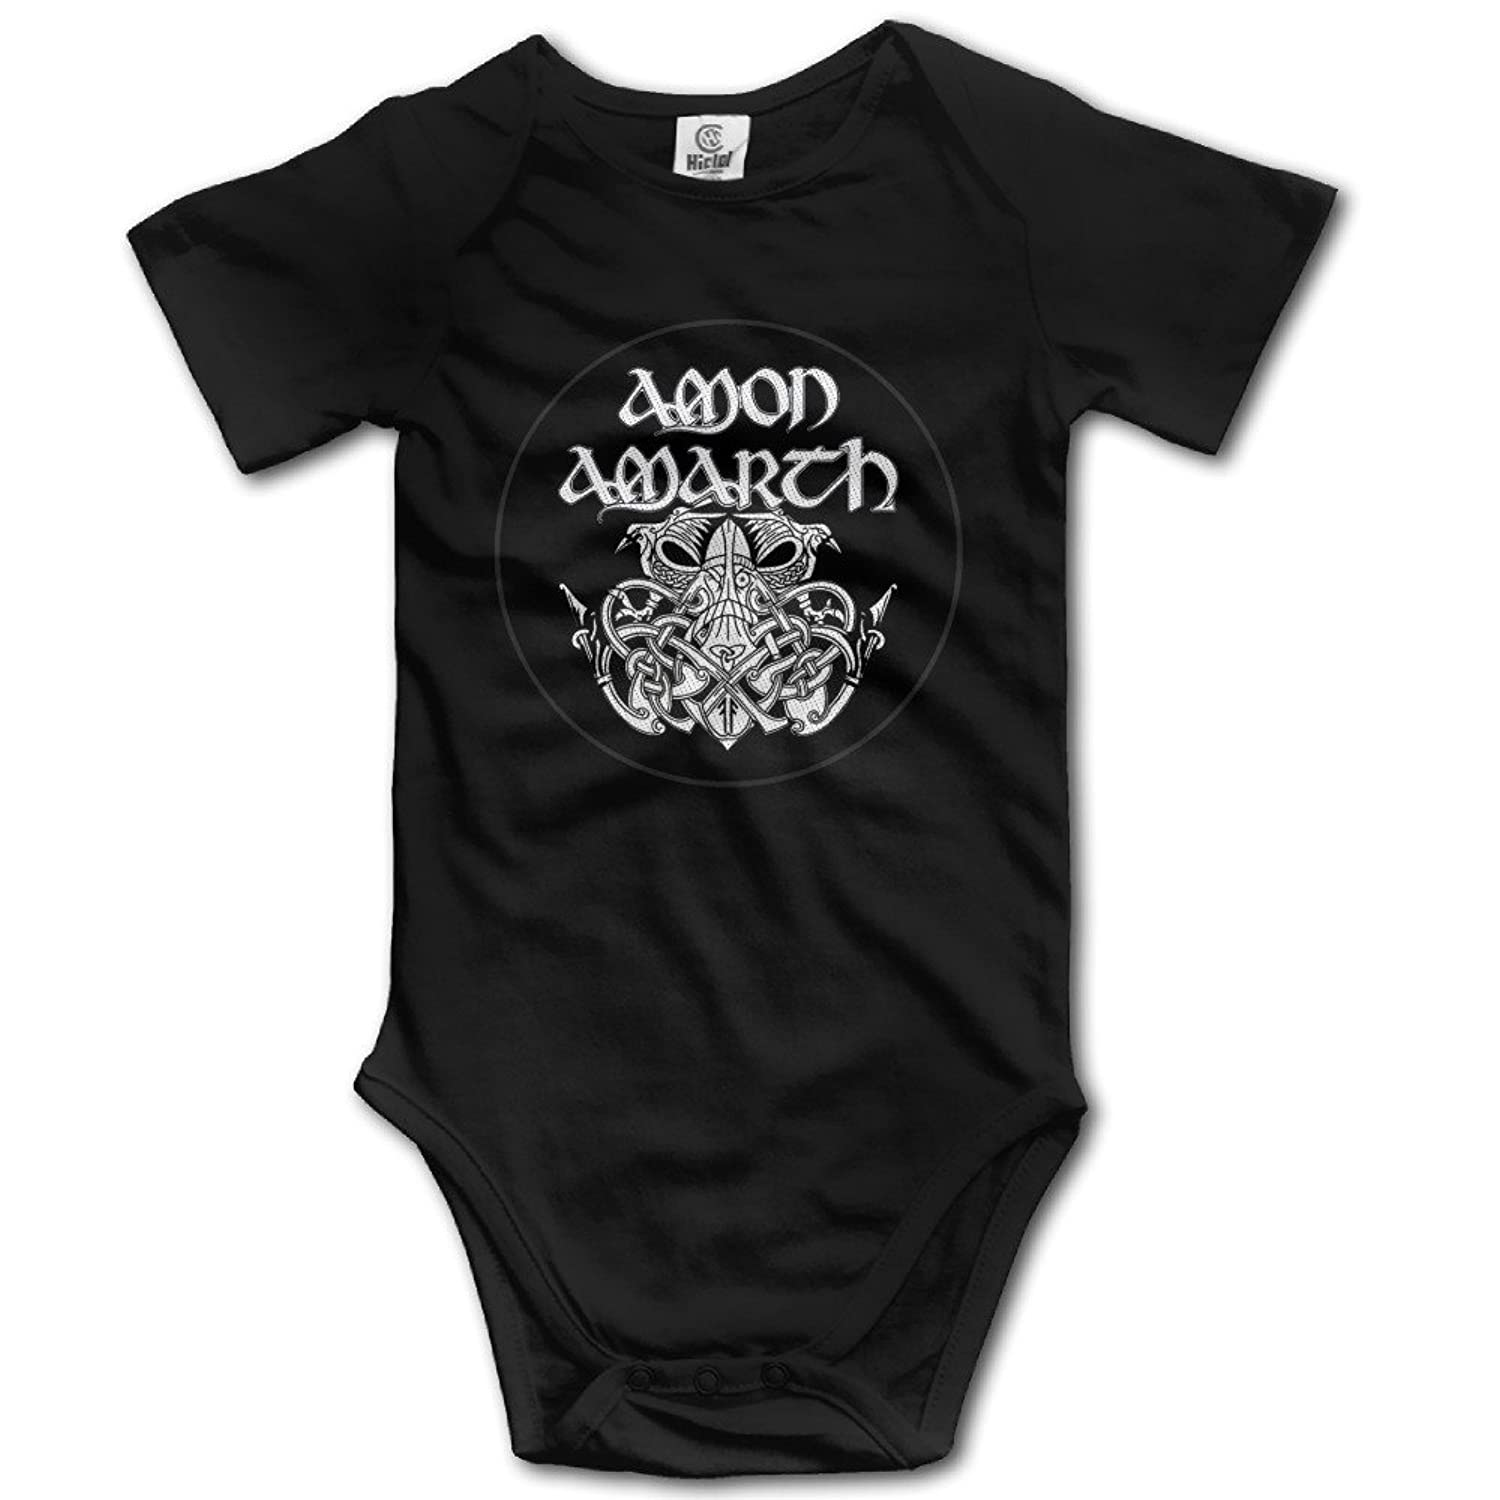 Amon Amarth Baby esie Cute Baby Clothes free shipping w